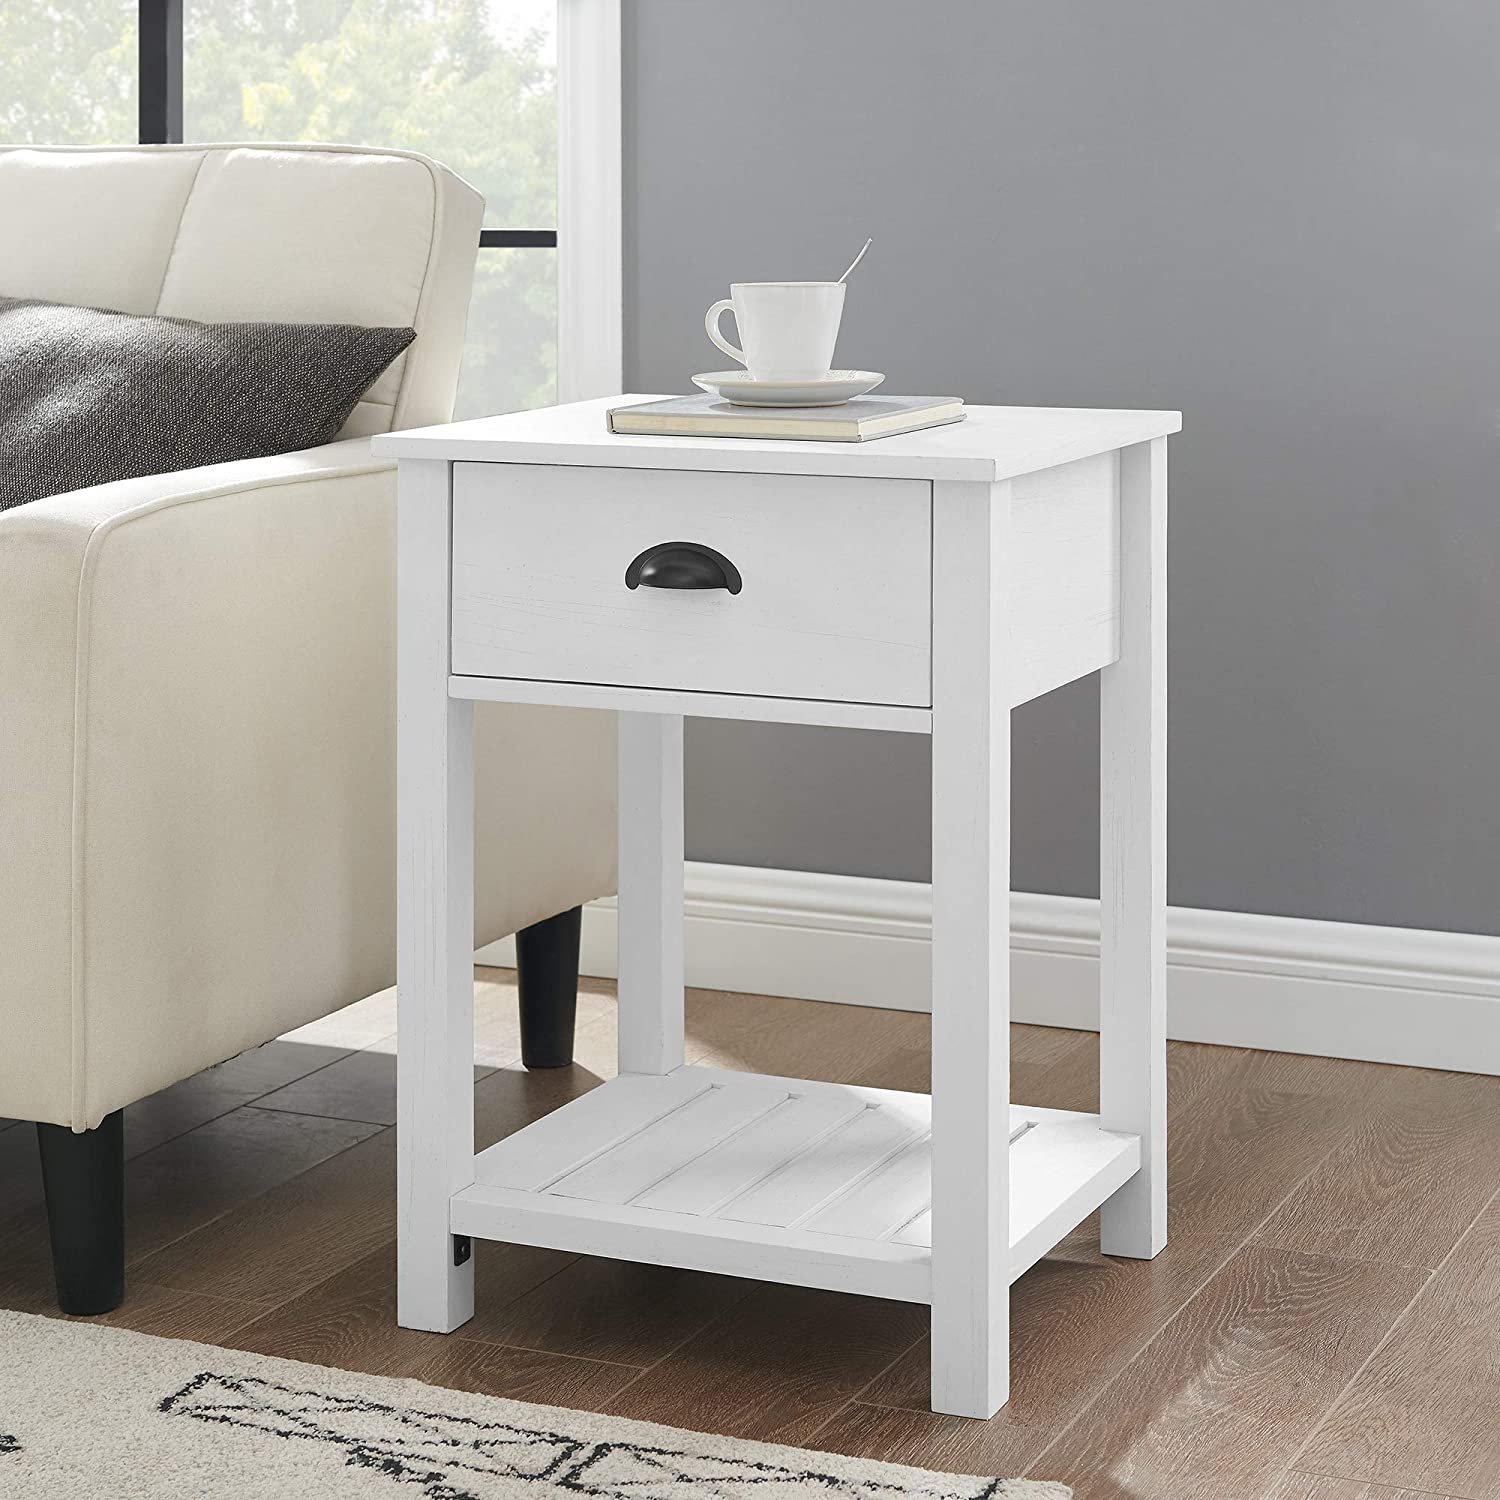 Amazon Com Walker Edison Farmhouse Square Side Accent Table Set Living Room Storage End Table With Storage Door Nightstand Bedroom 18 Inch Brushed White Furniture Decor